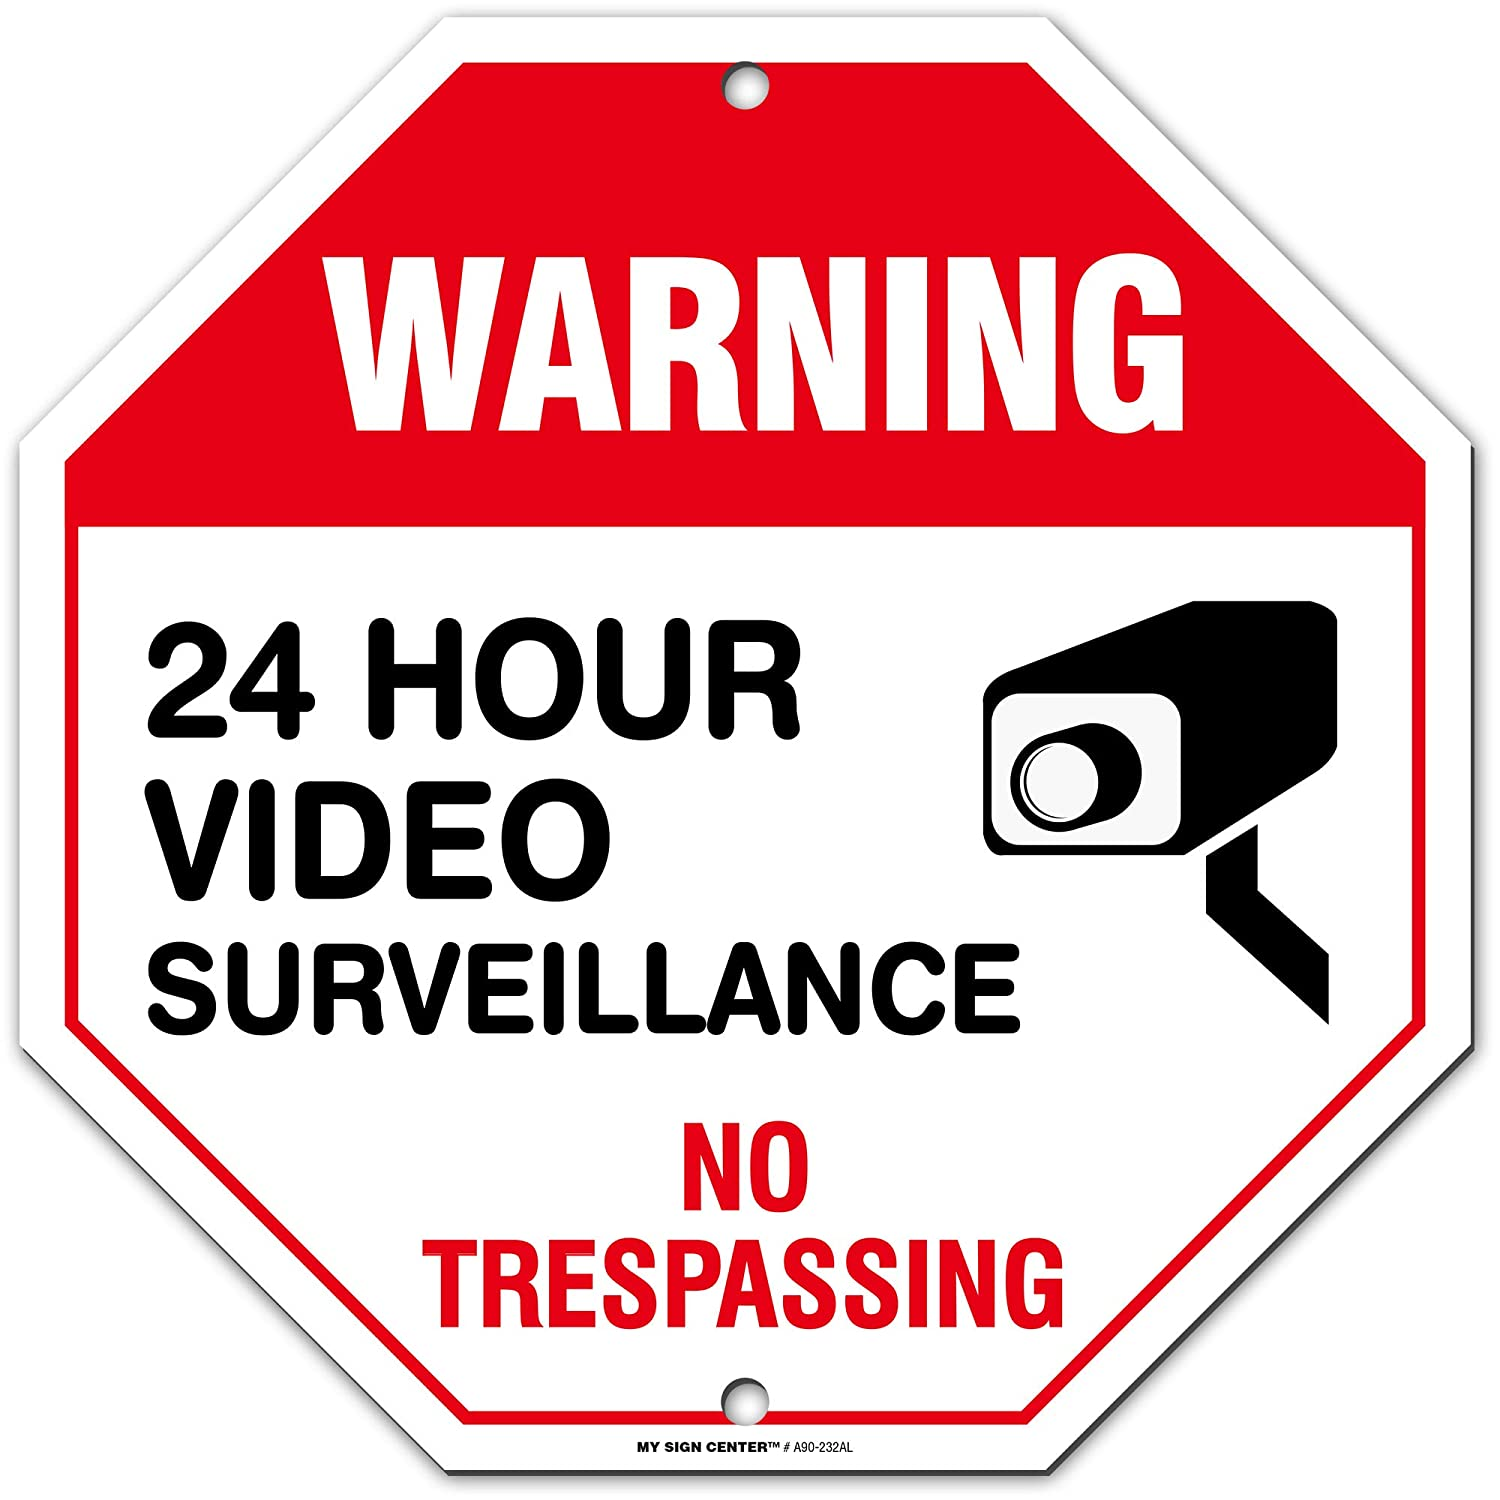 24 Hour Video Surveillance Sign 2 Pack Made in USA by SIGO SIGNS Fade Resistant Video Recording Sign,10x7 Rust Free Heavy 0.40 Aluminum Indoor Outdoor Use